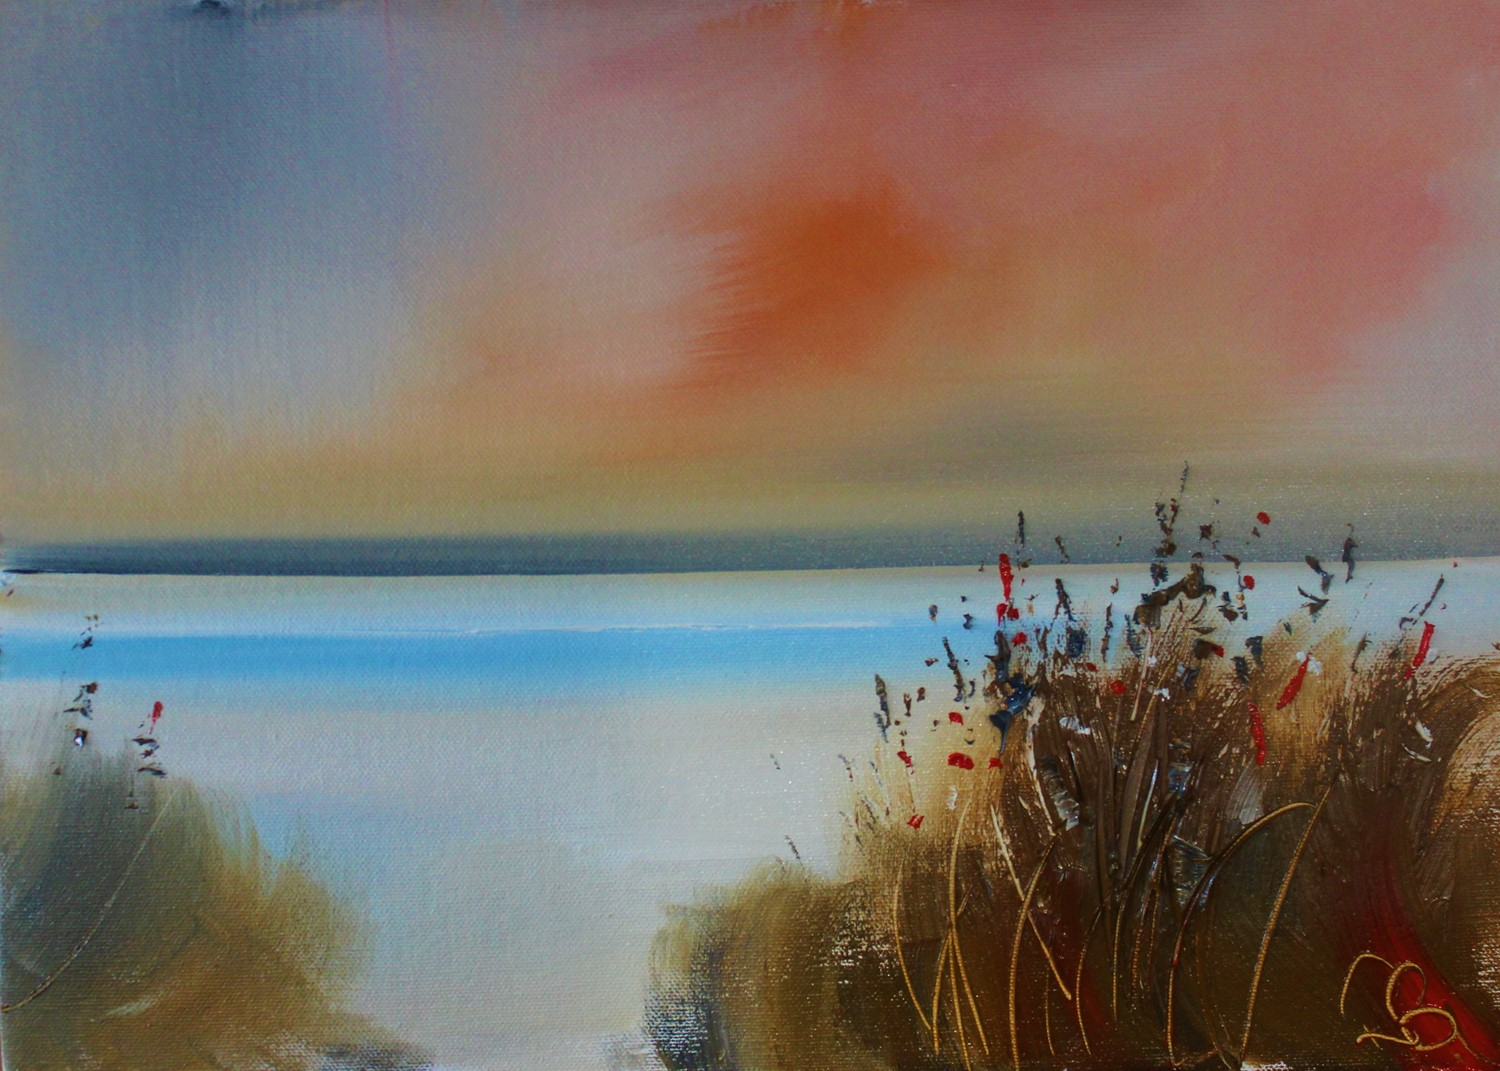 'Through the Rushes' by artist Rosanne Barr